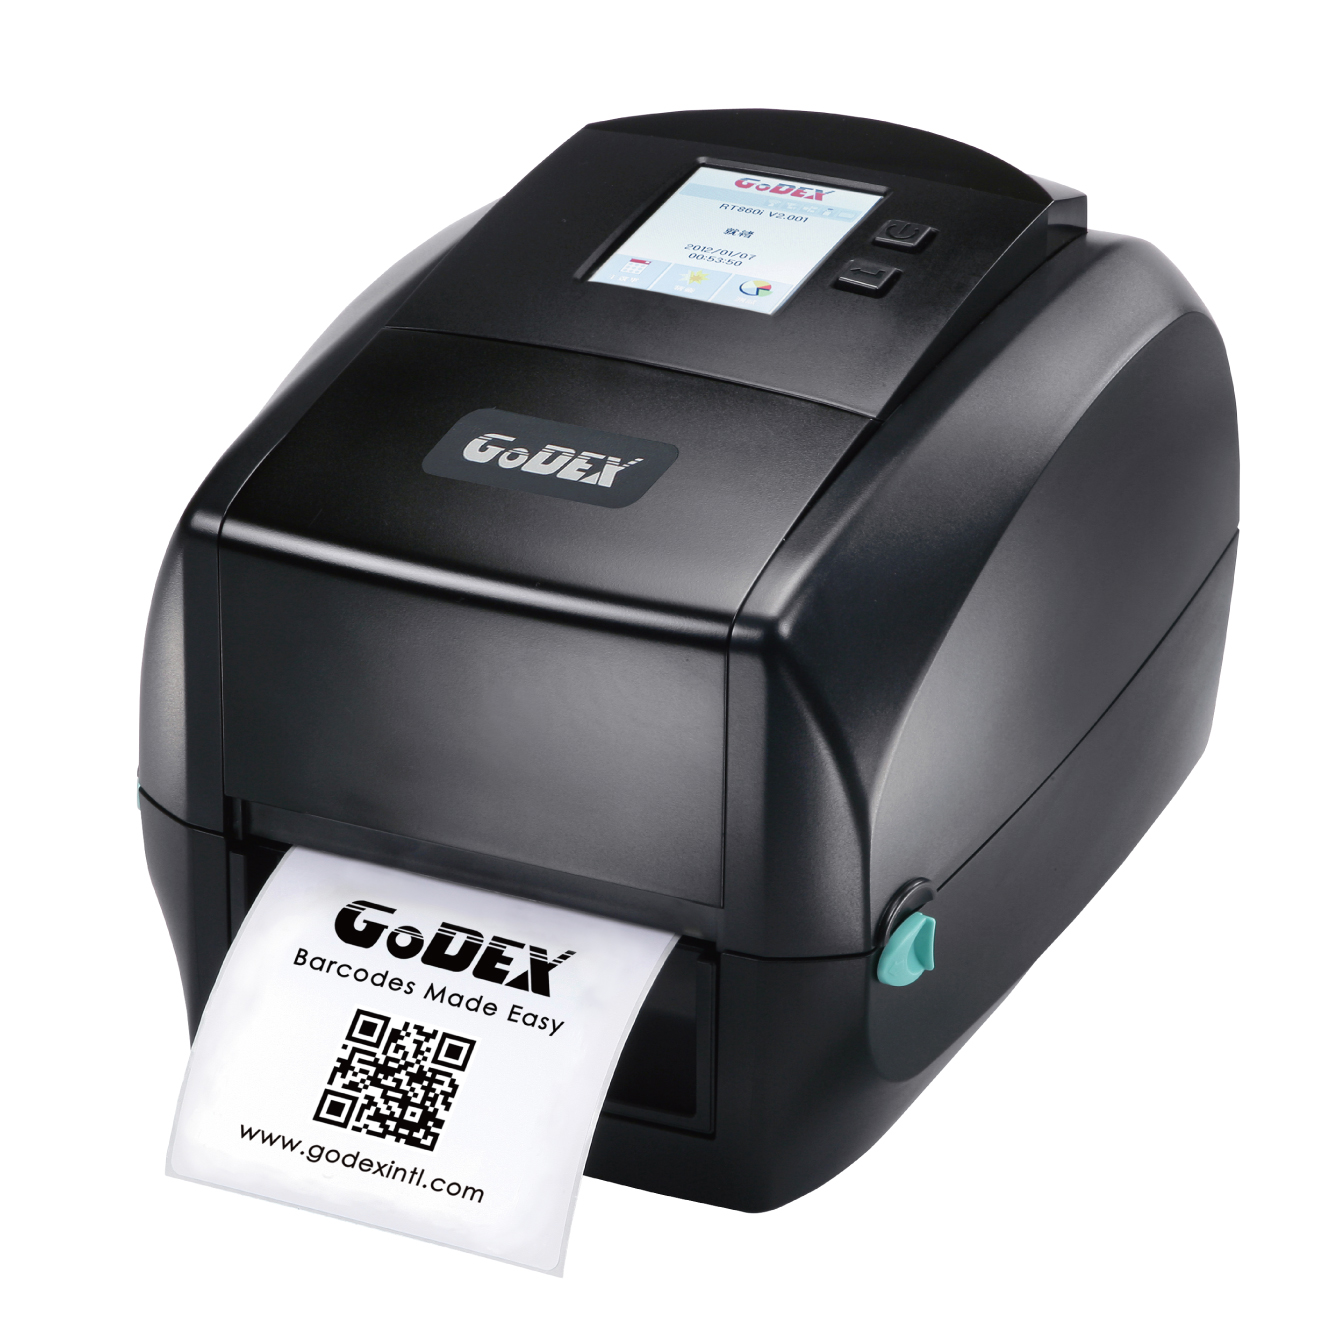 printer technologies M2 printer with a build volume measuring 74 x 46 x 128 (189mm x 118mm x326mm), manufacturing features, and carbon's groundbreaking digital light synthesis™ technology, m2 is the perfect printer for your speedcell™ system.